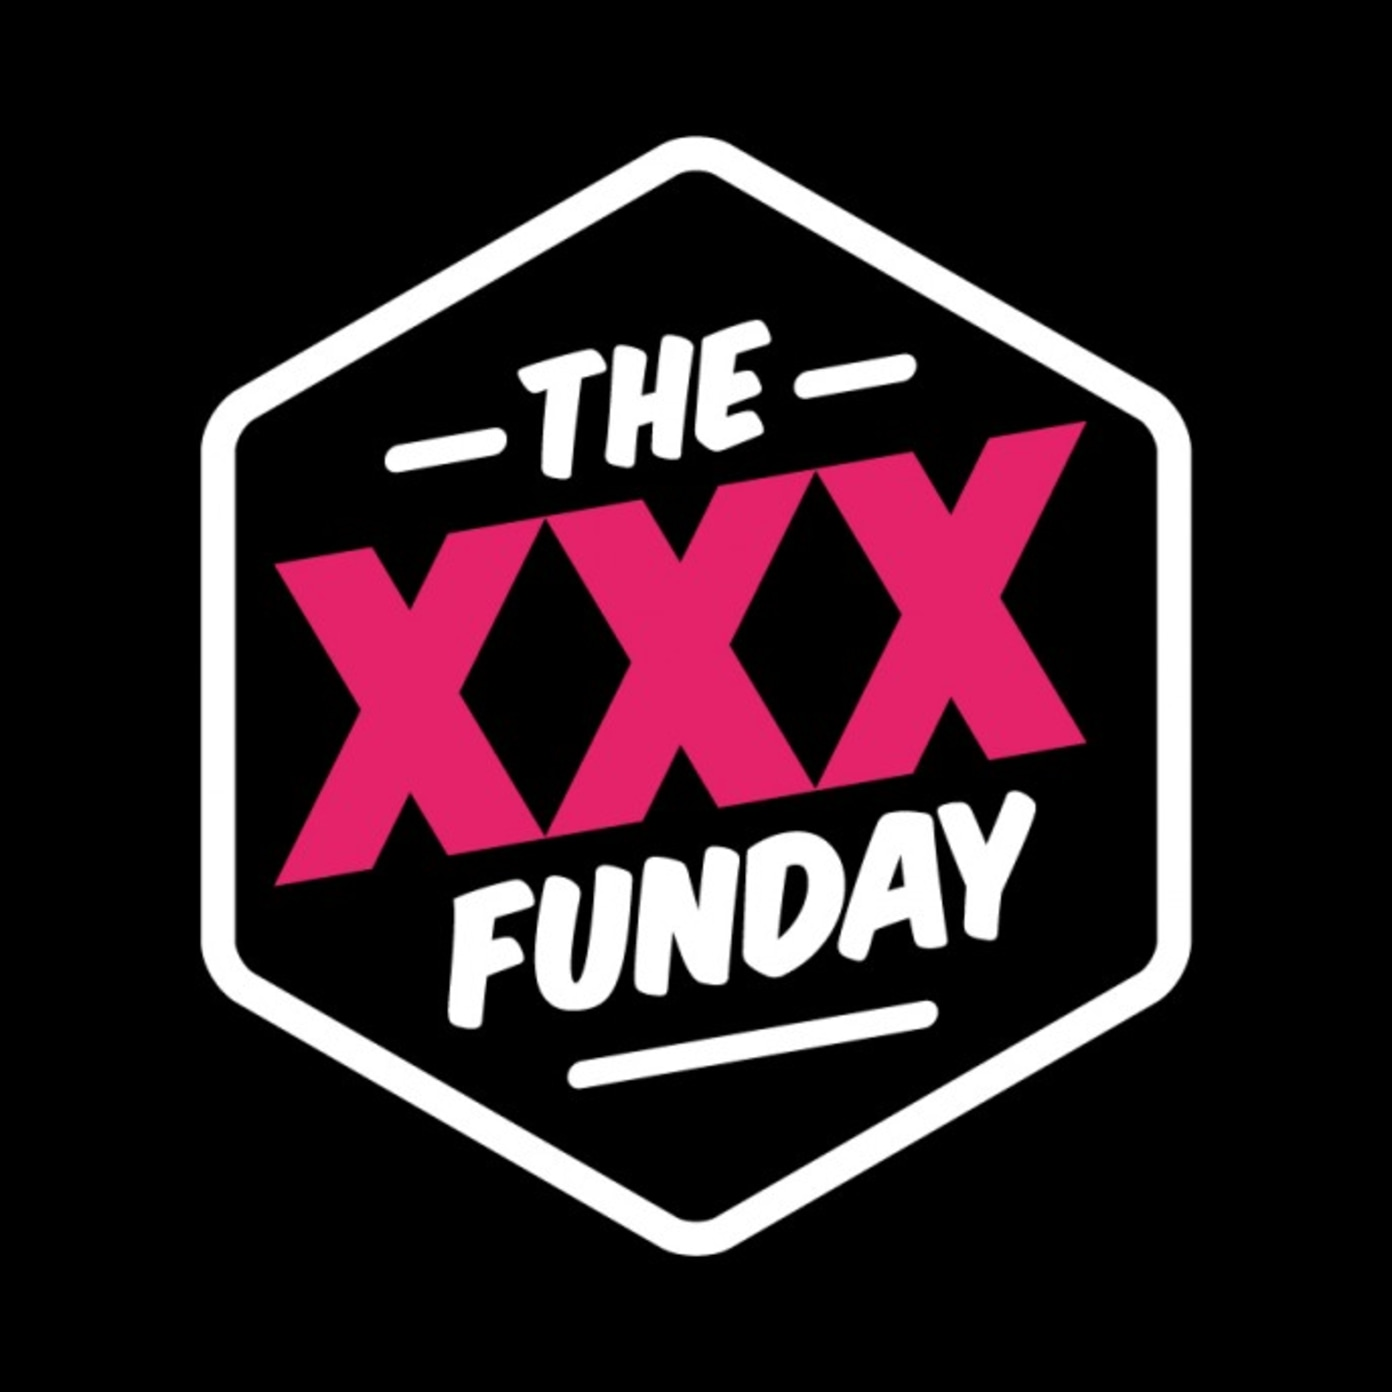 The XXX Funday - Outdoor day party 31 October 2015